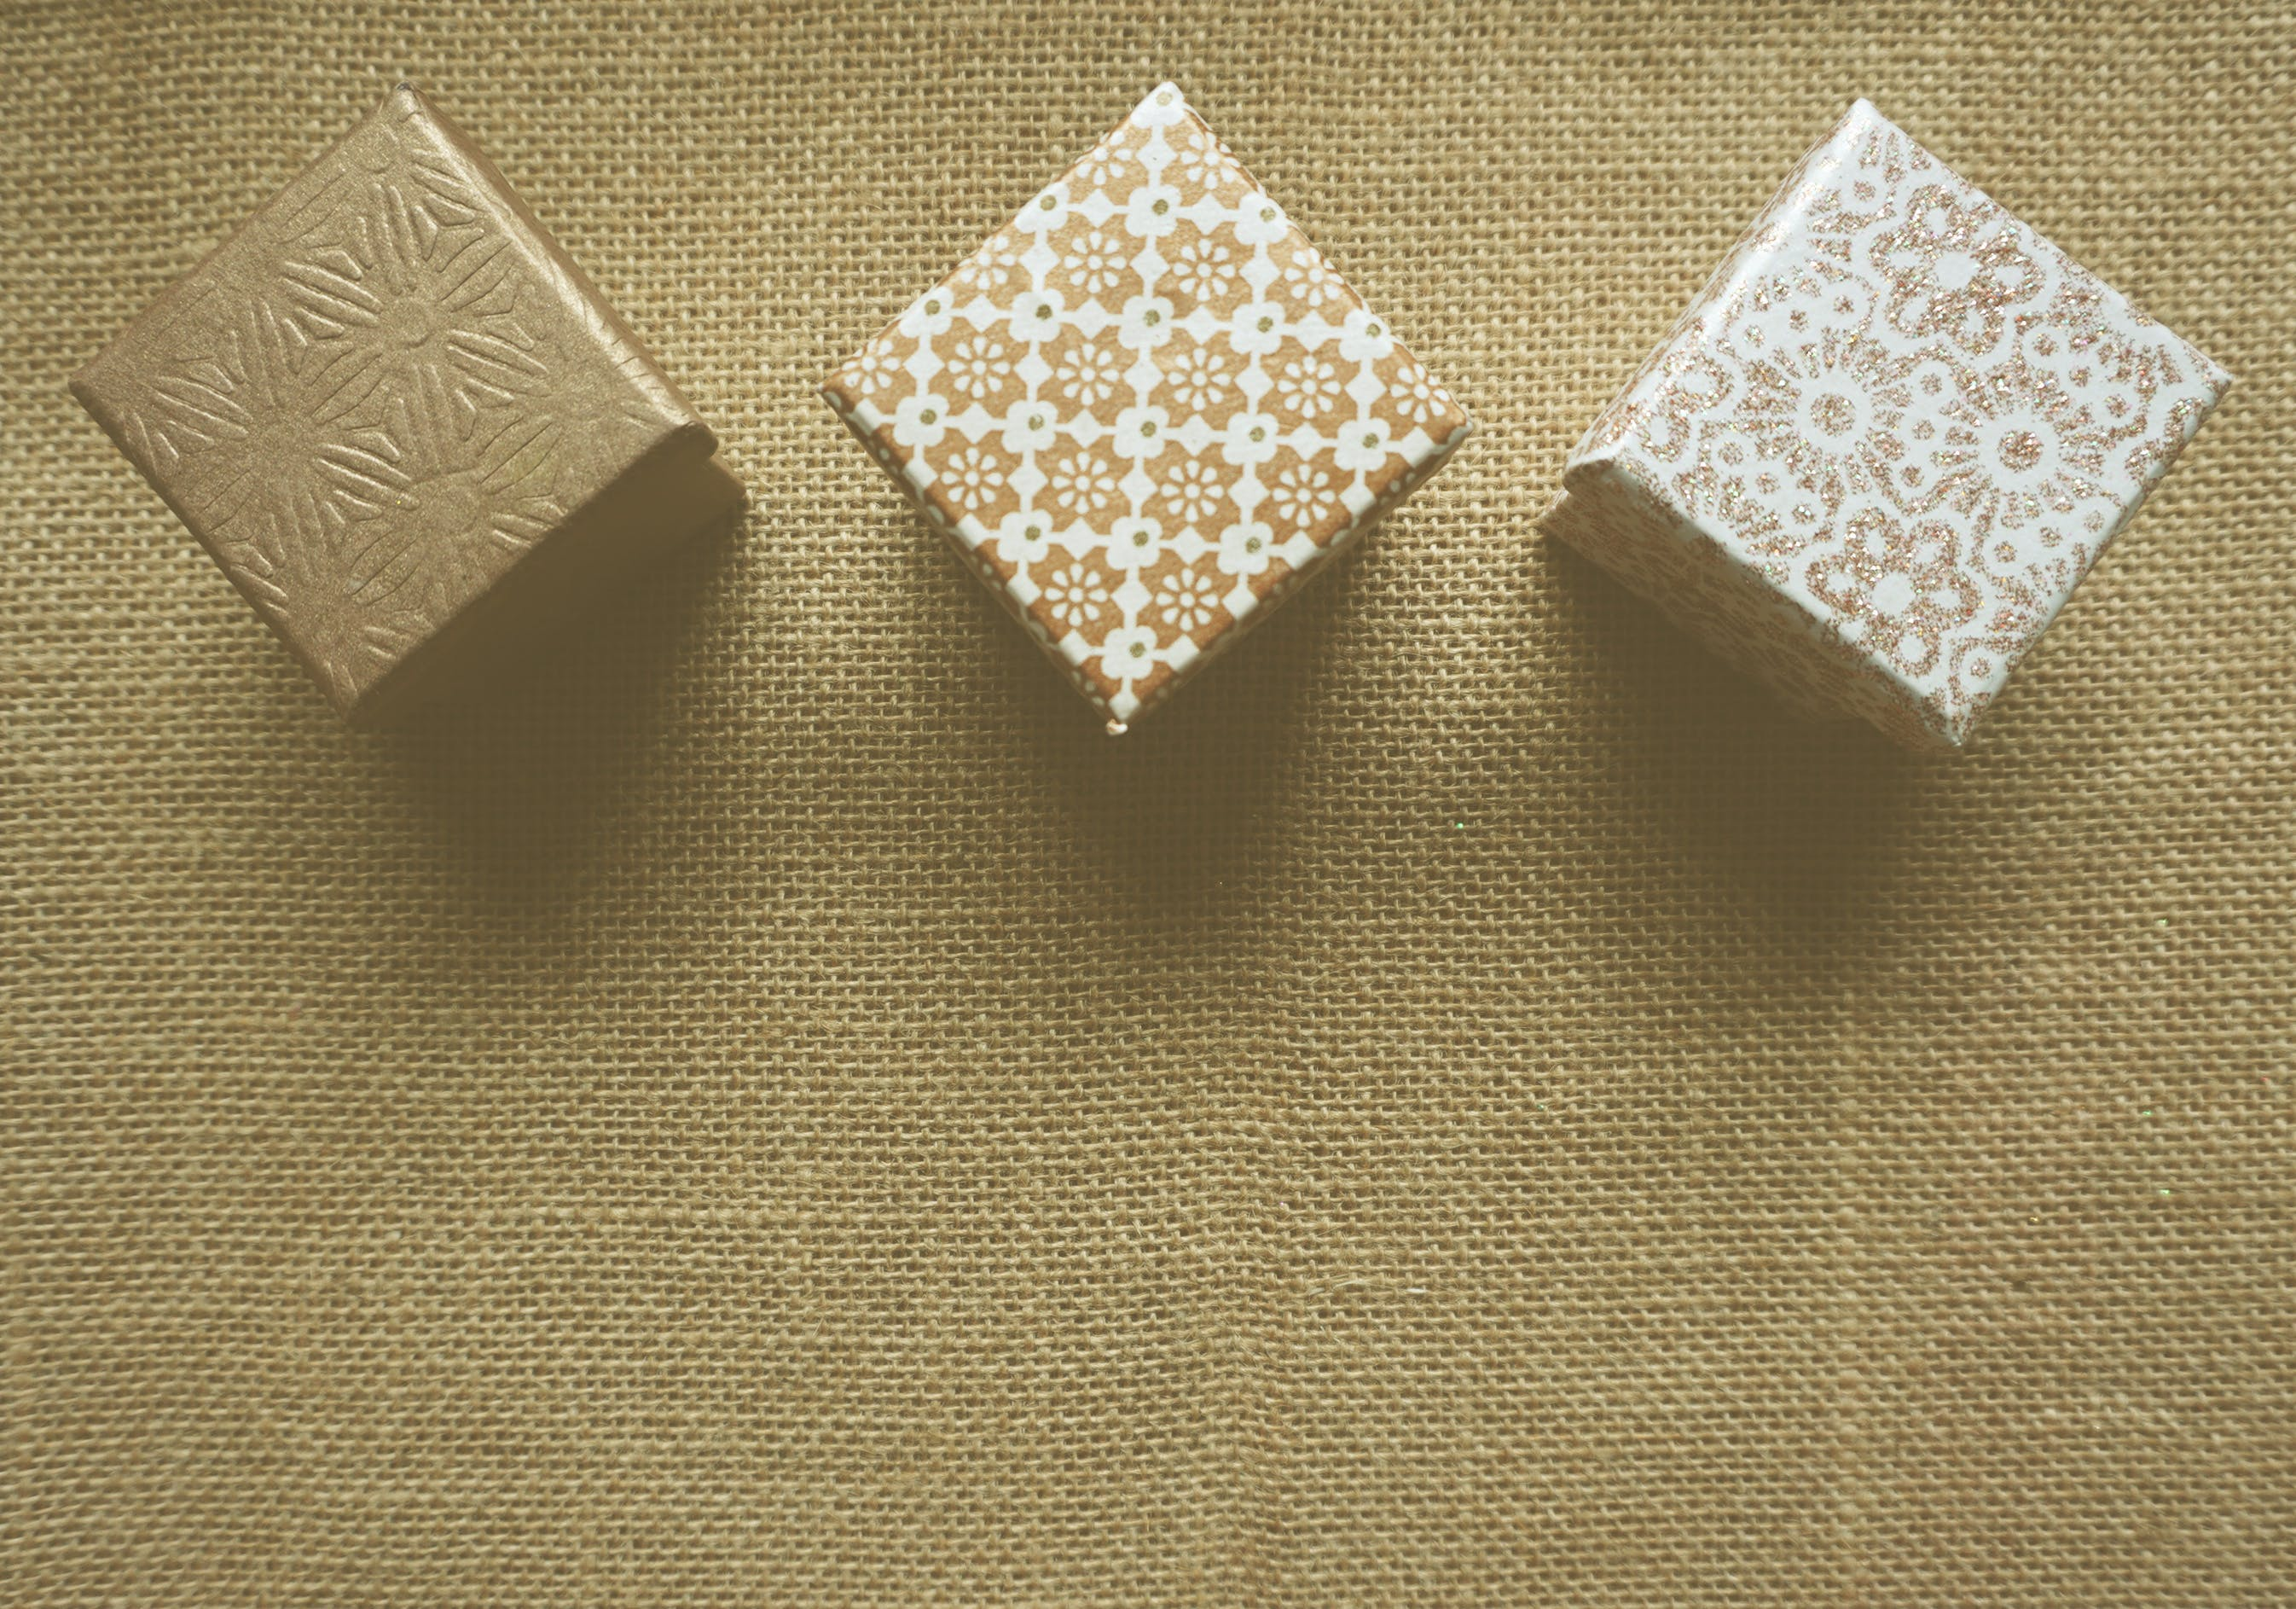 Free stock photo of pattern, texture, design, boxes